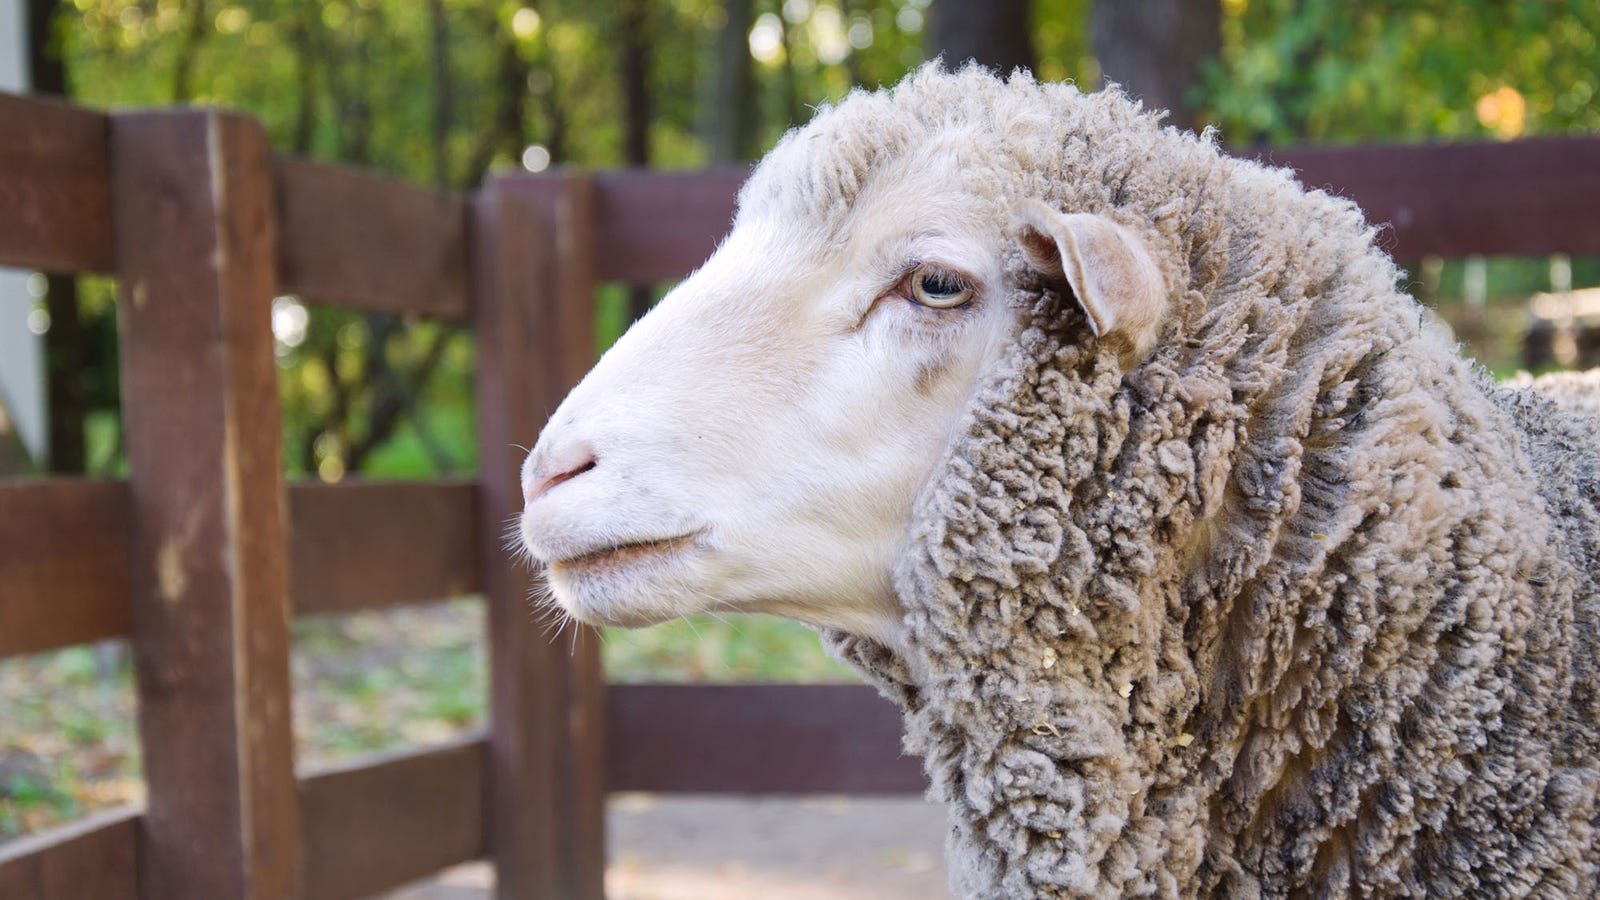 """The Big Sheep: It's frustrating being told to """"watch your fingers,"""" but what's even more frustrating is offering them and not getting so much as a nibble."""